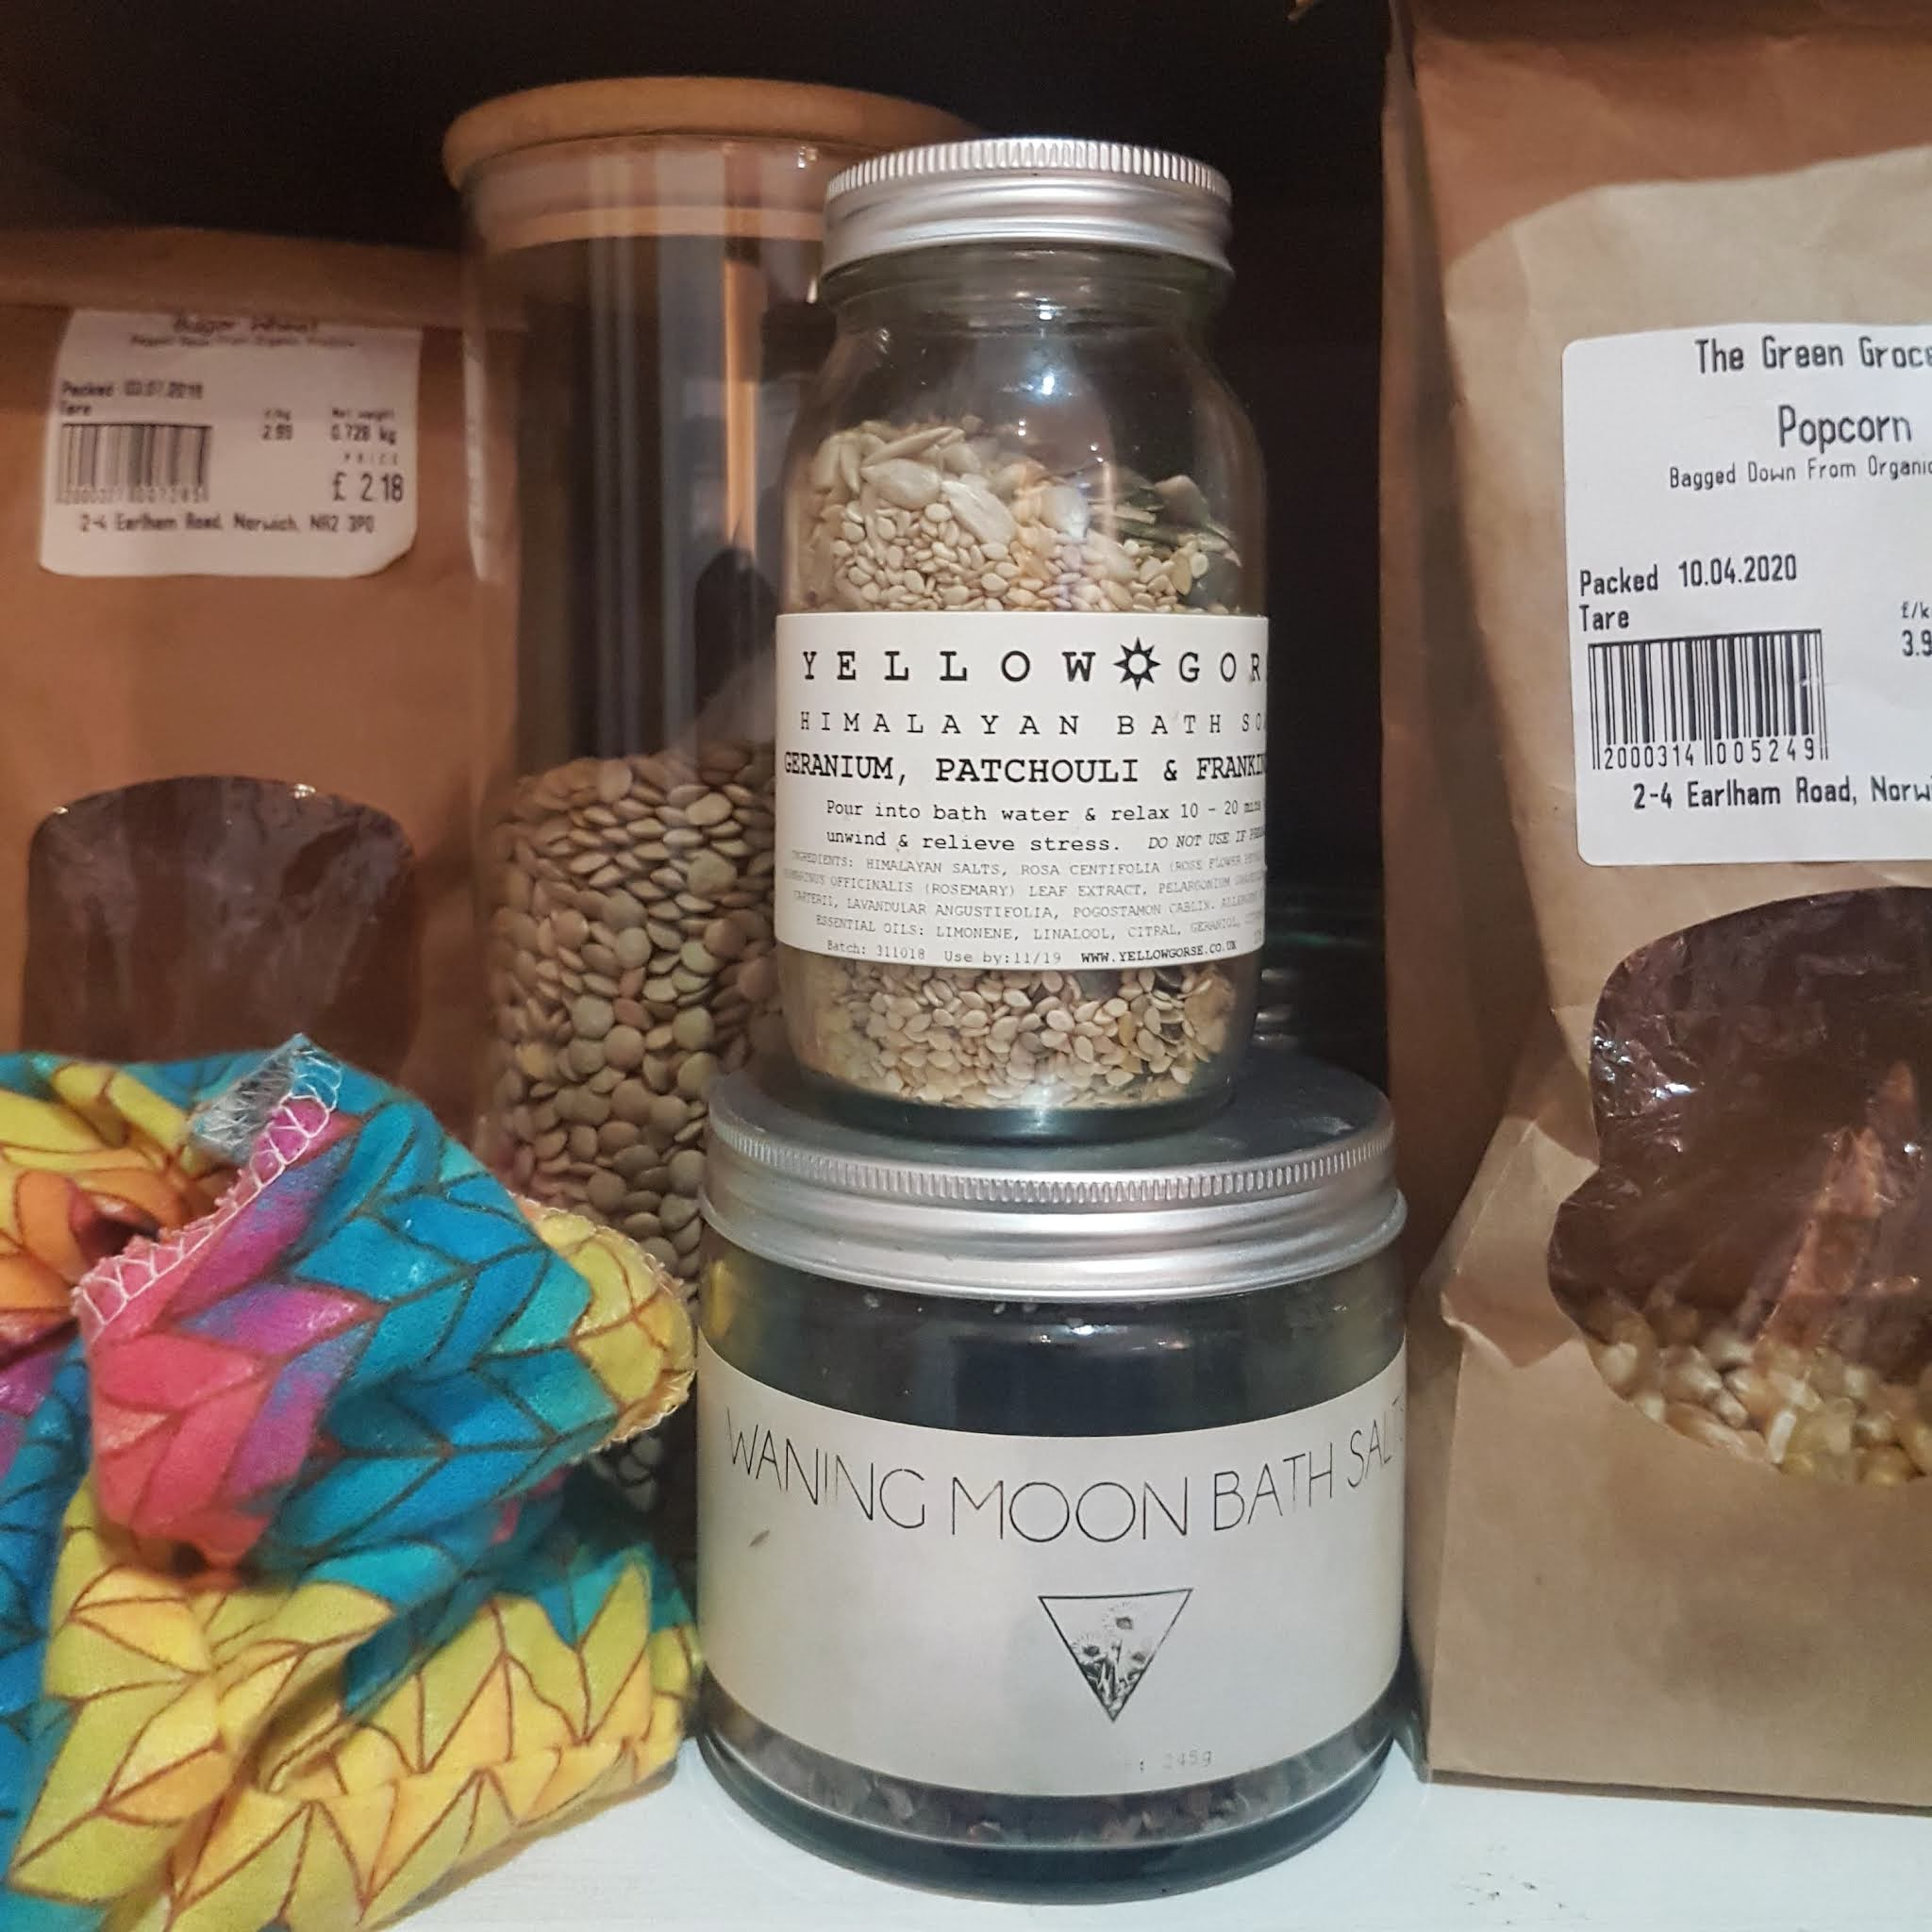 Empty bath salts jar repurposed into pantry staple, upcycled food storage